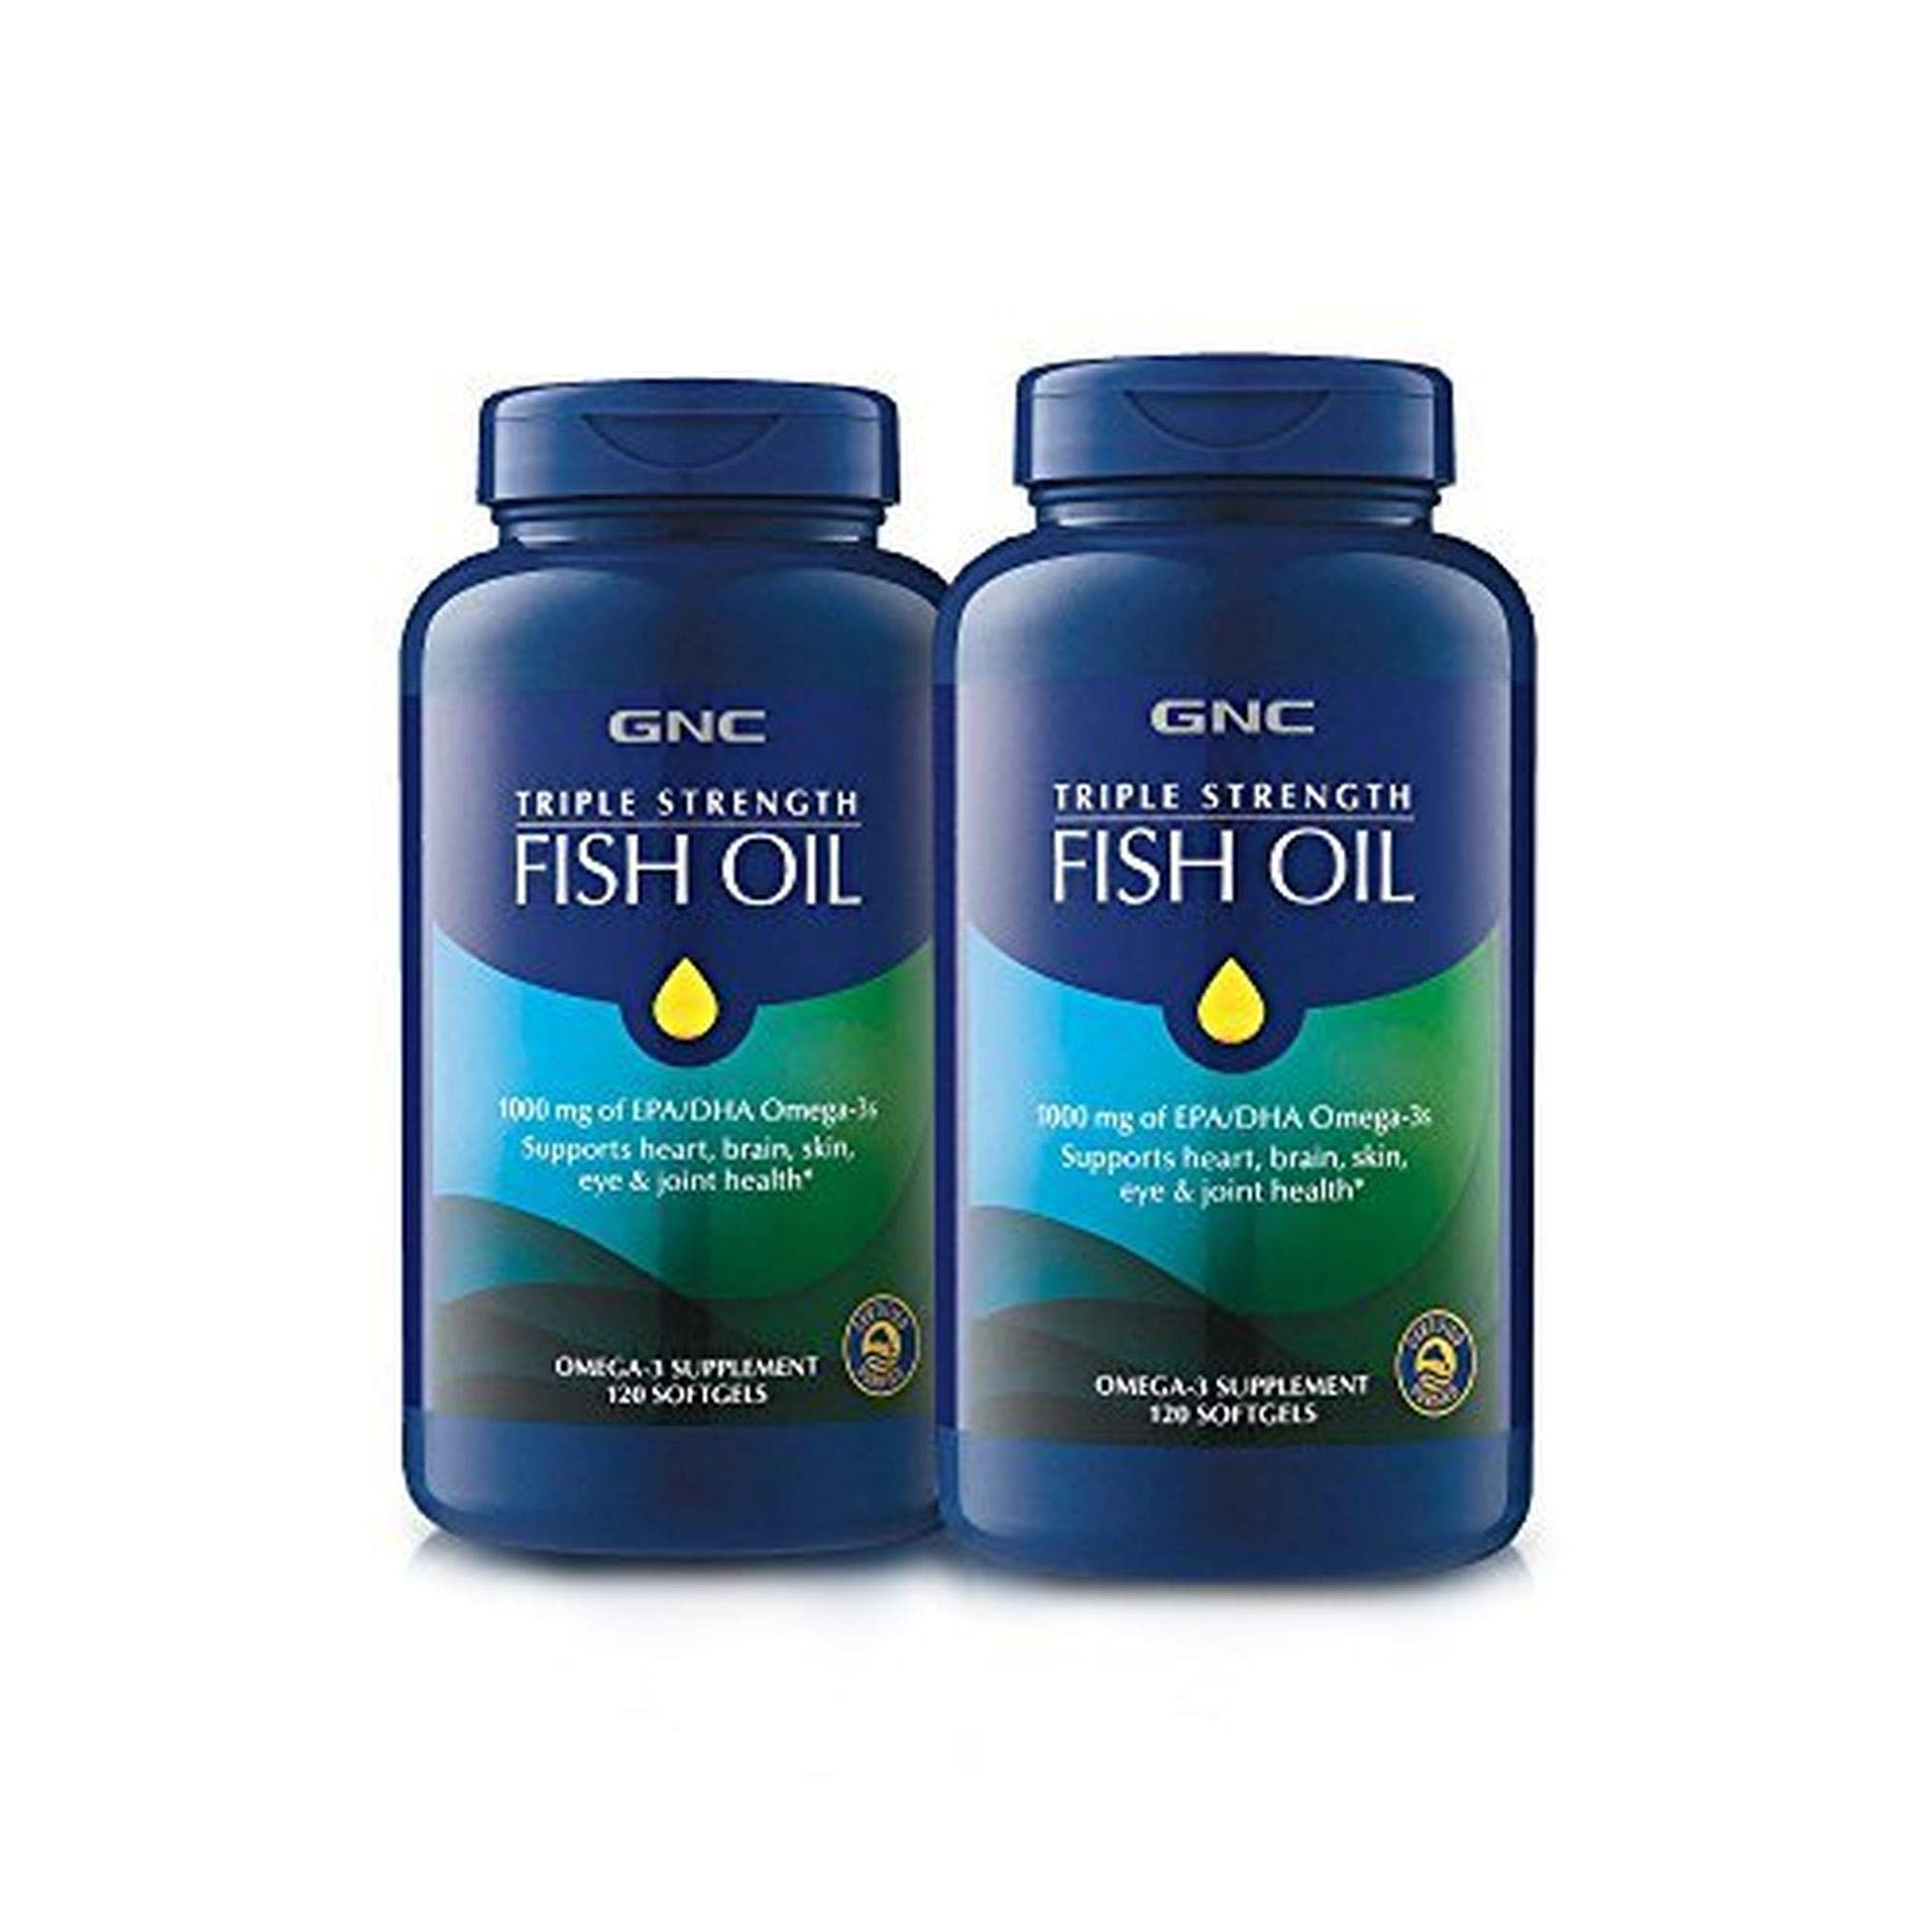 GNC Triple Strength Fish Oil, 2 Pack, for Join, Skin, Eye, and Heart Health